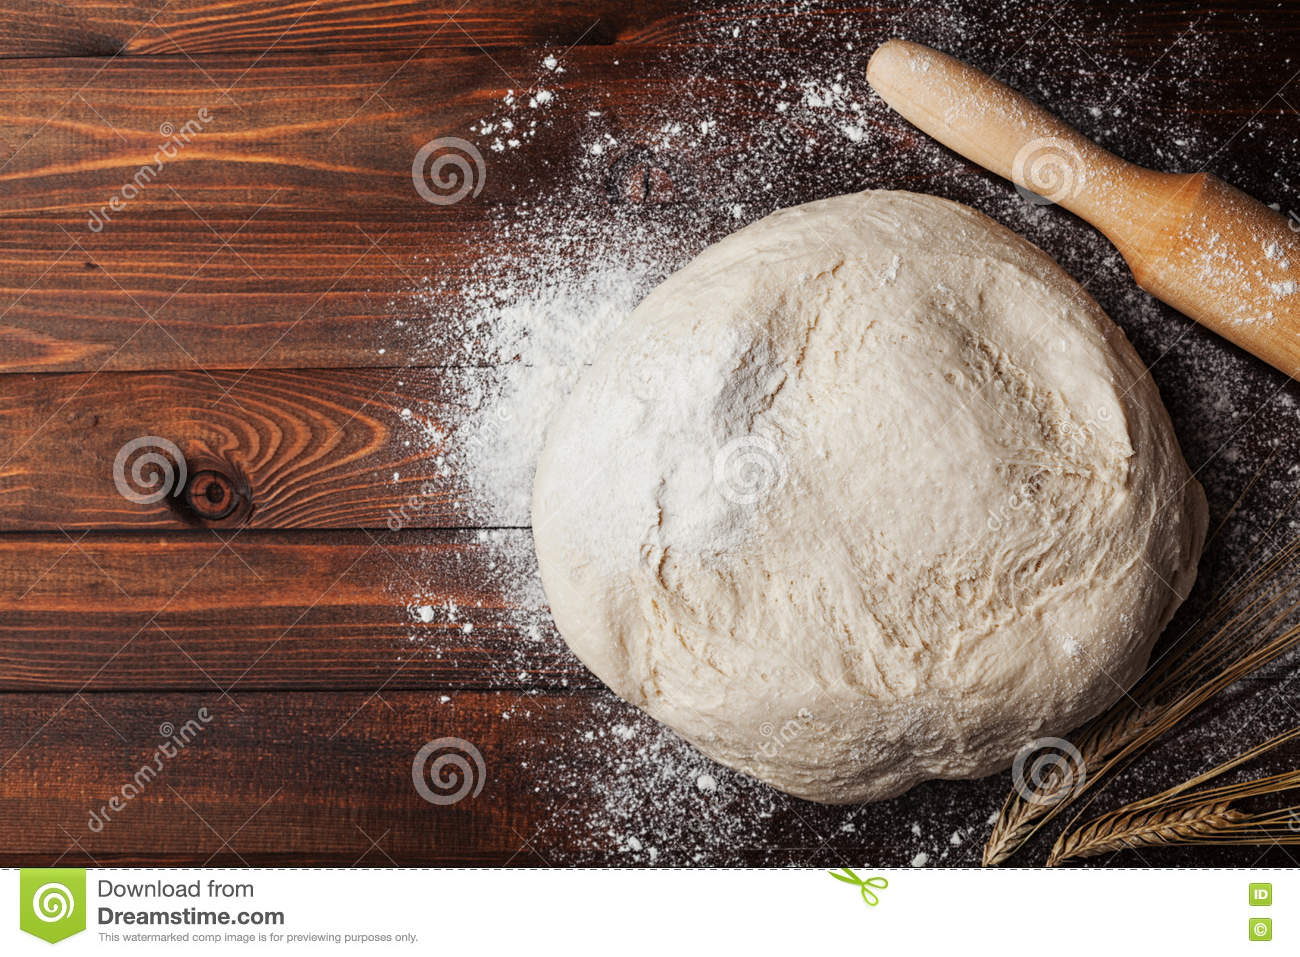 Dough with flour, rolling pin, wheat ears on rustic wooden table from above. Homemade pastry for bread or pizza. Bakery background